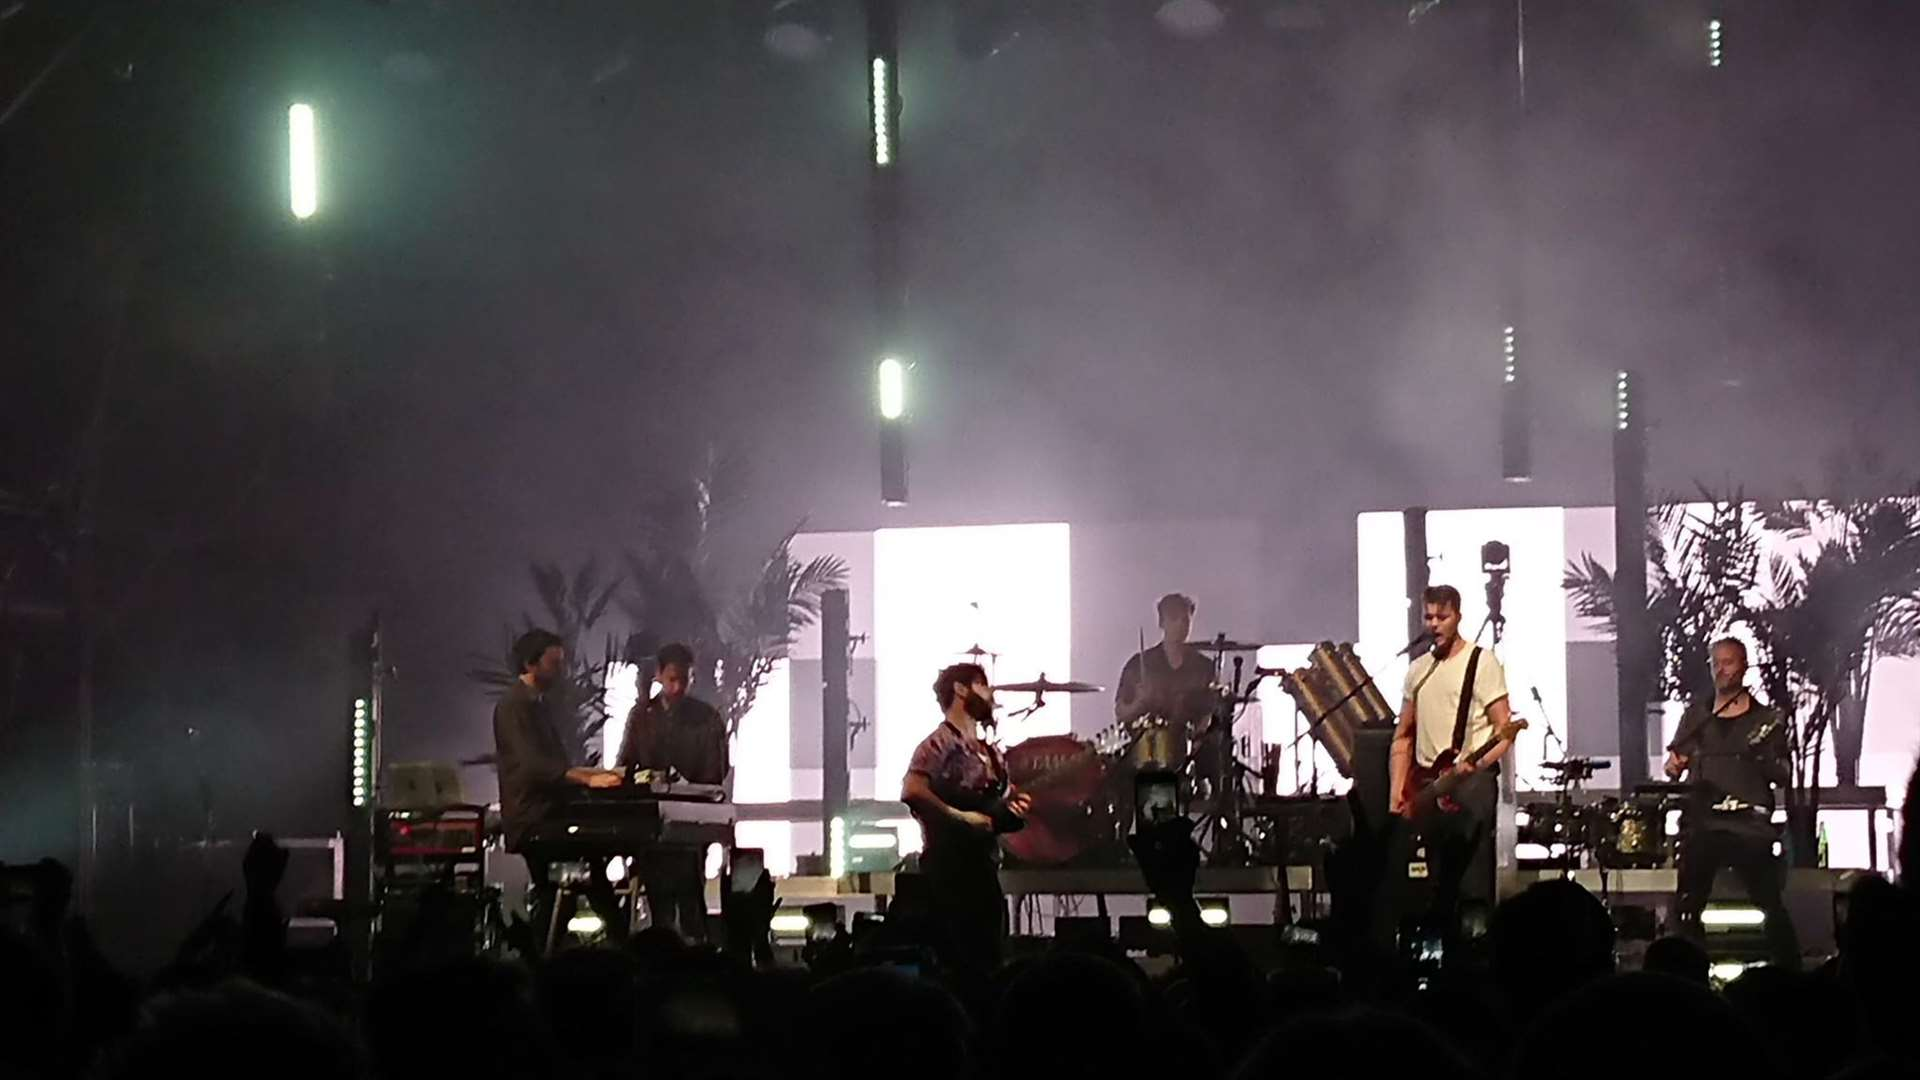 Foals performed in Norfolk as part of their UK tour which takes them to Alexandra Palace next